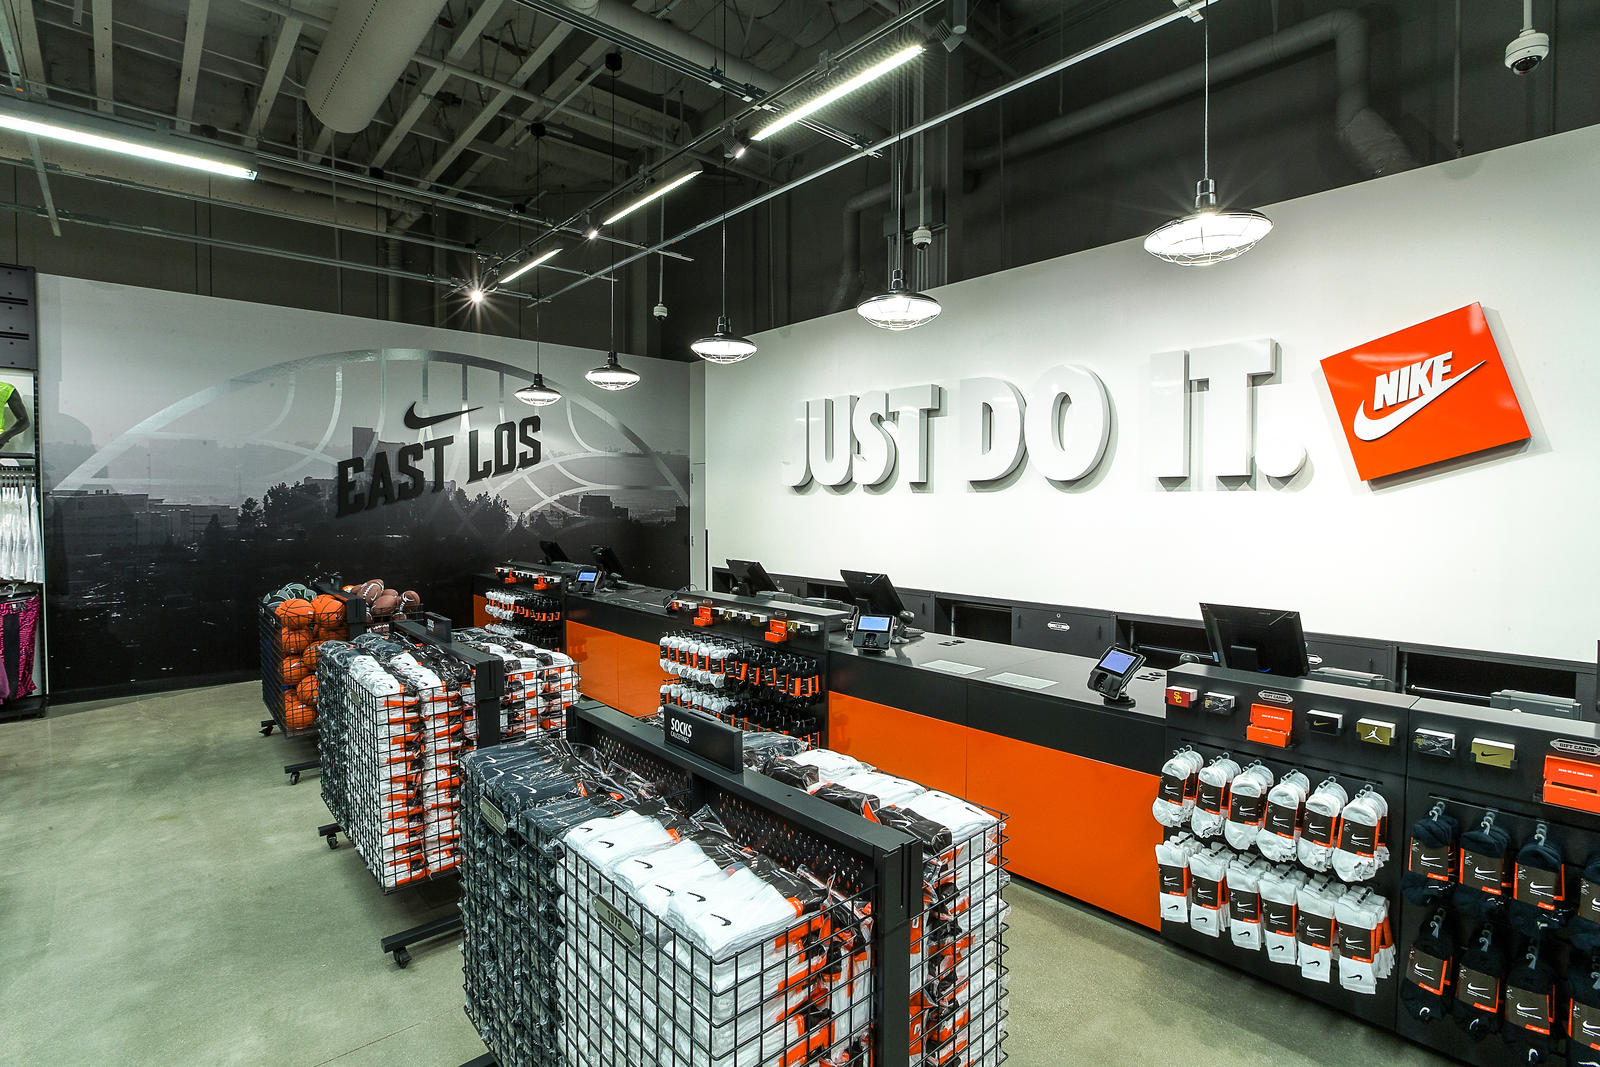 Nike Outlet Stores Nearby Looking for an Nike Outlet store in a mall or outlet near you? Find your city and/or state in the list below. Note: Our database only includes stores that are found in a mall or outlet, and not freestanding stores.